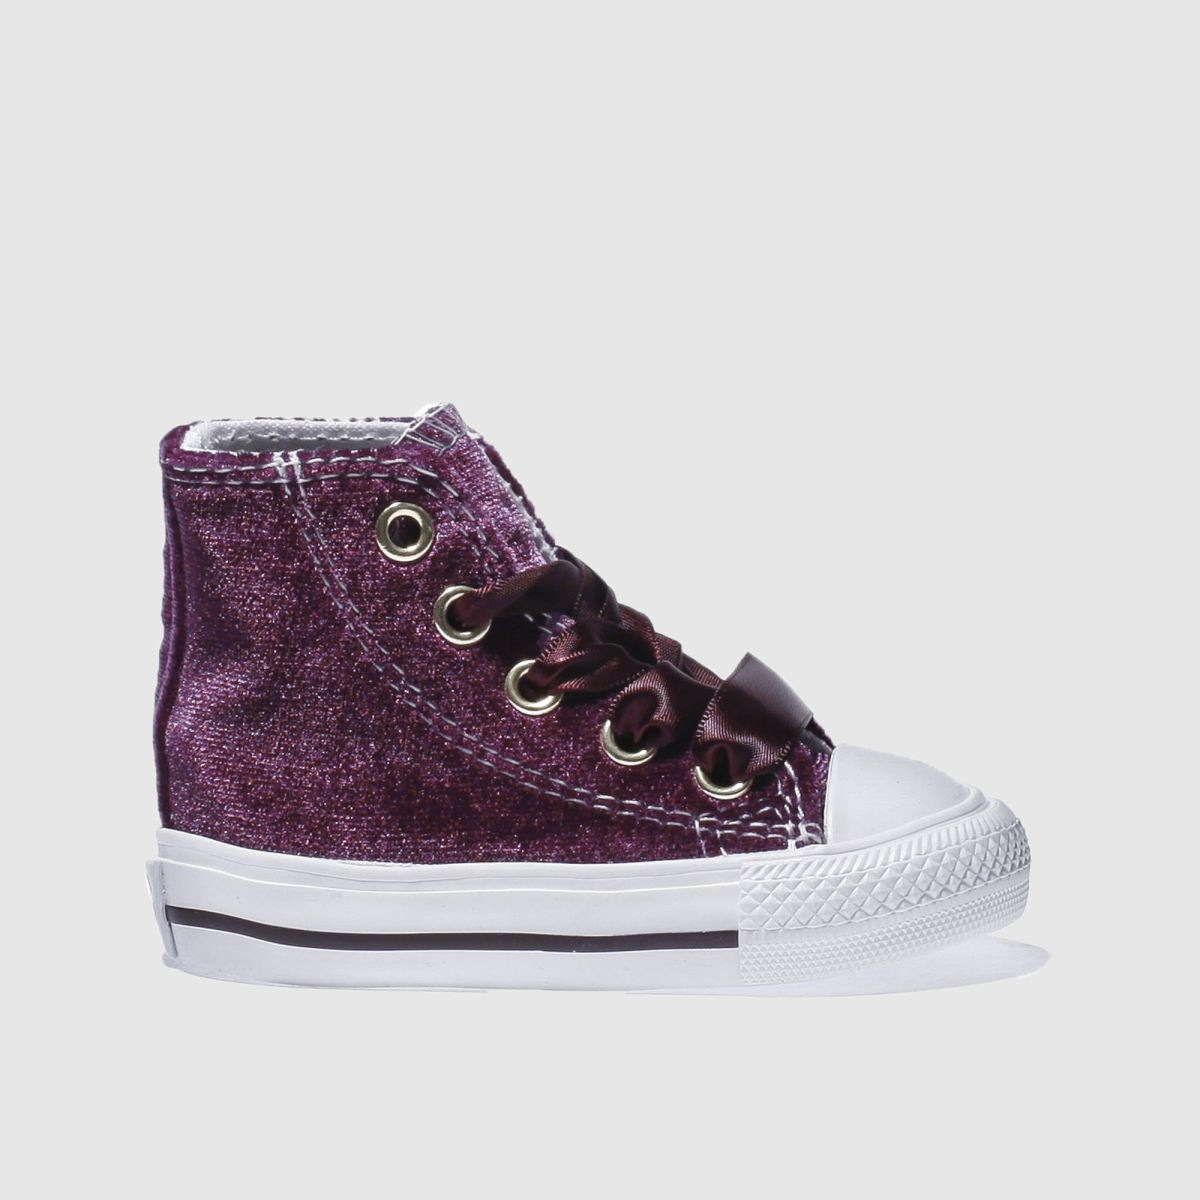 converse burgundy all star velvet hi Girls Toddler Trainers